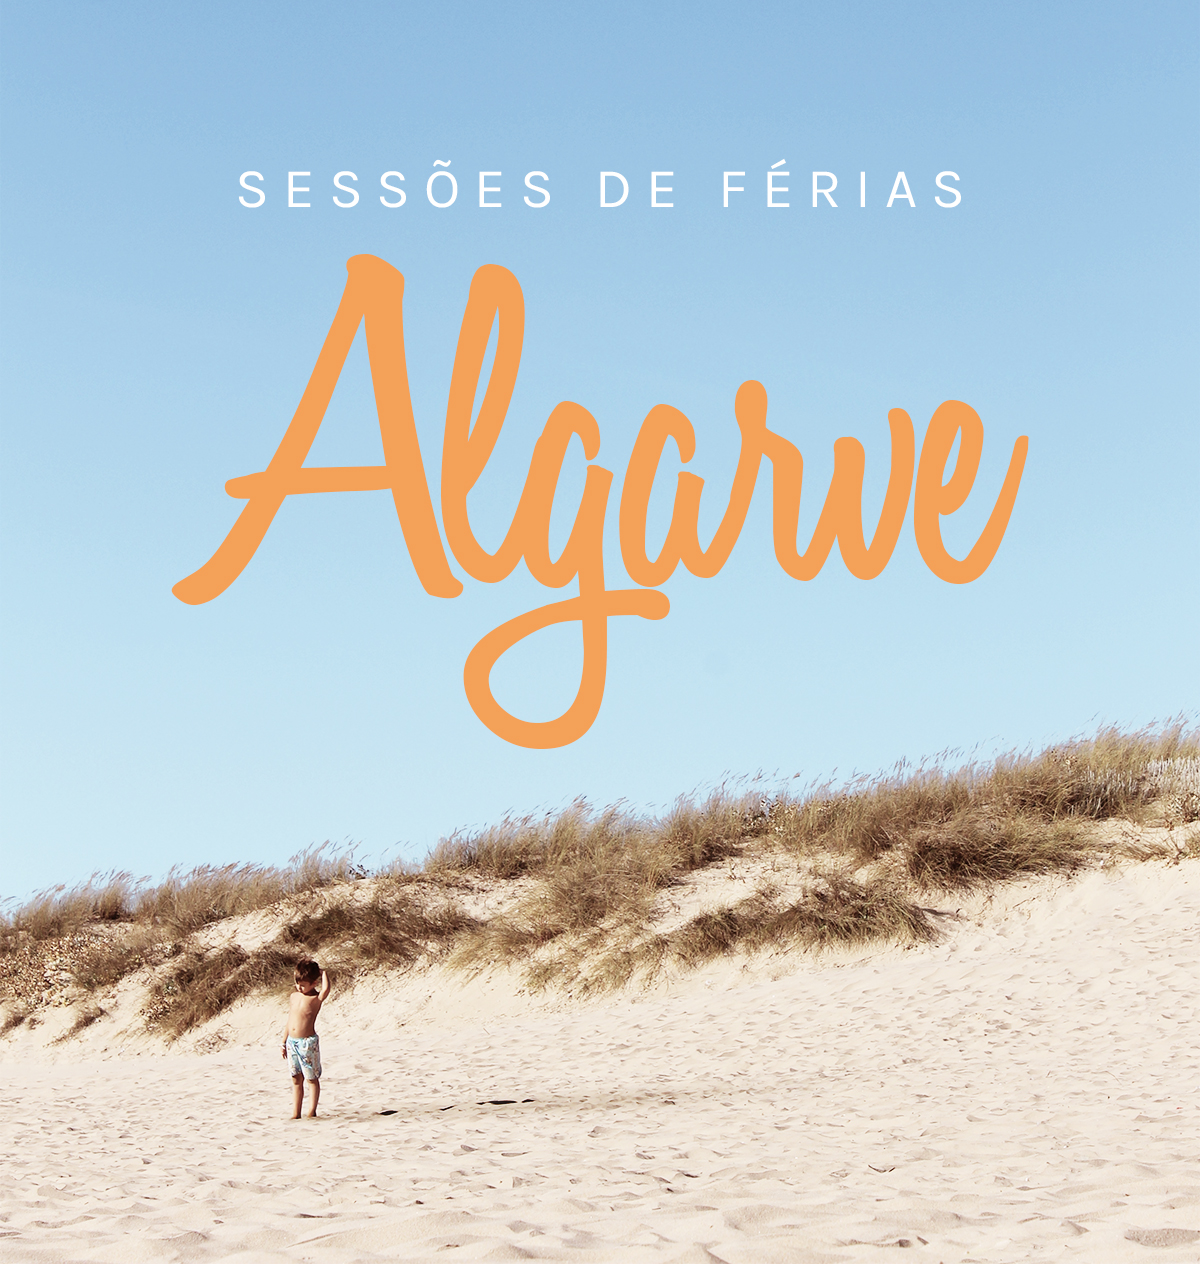 SessoesFerias_Algarve16